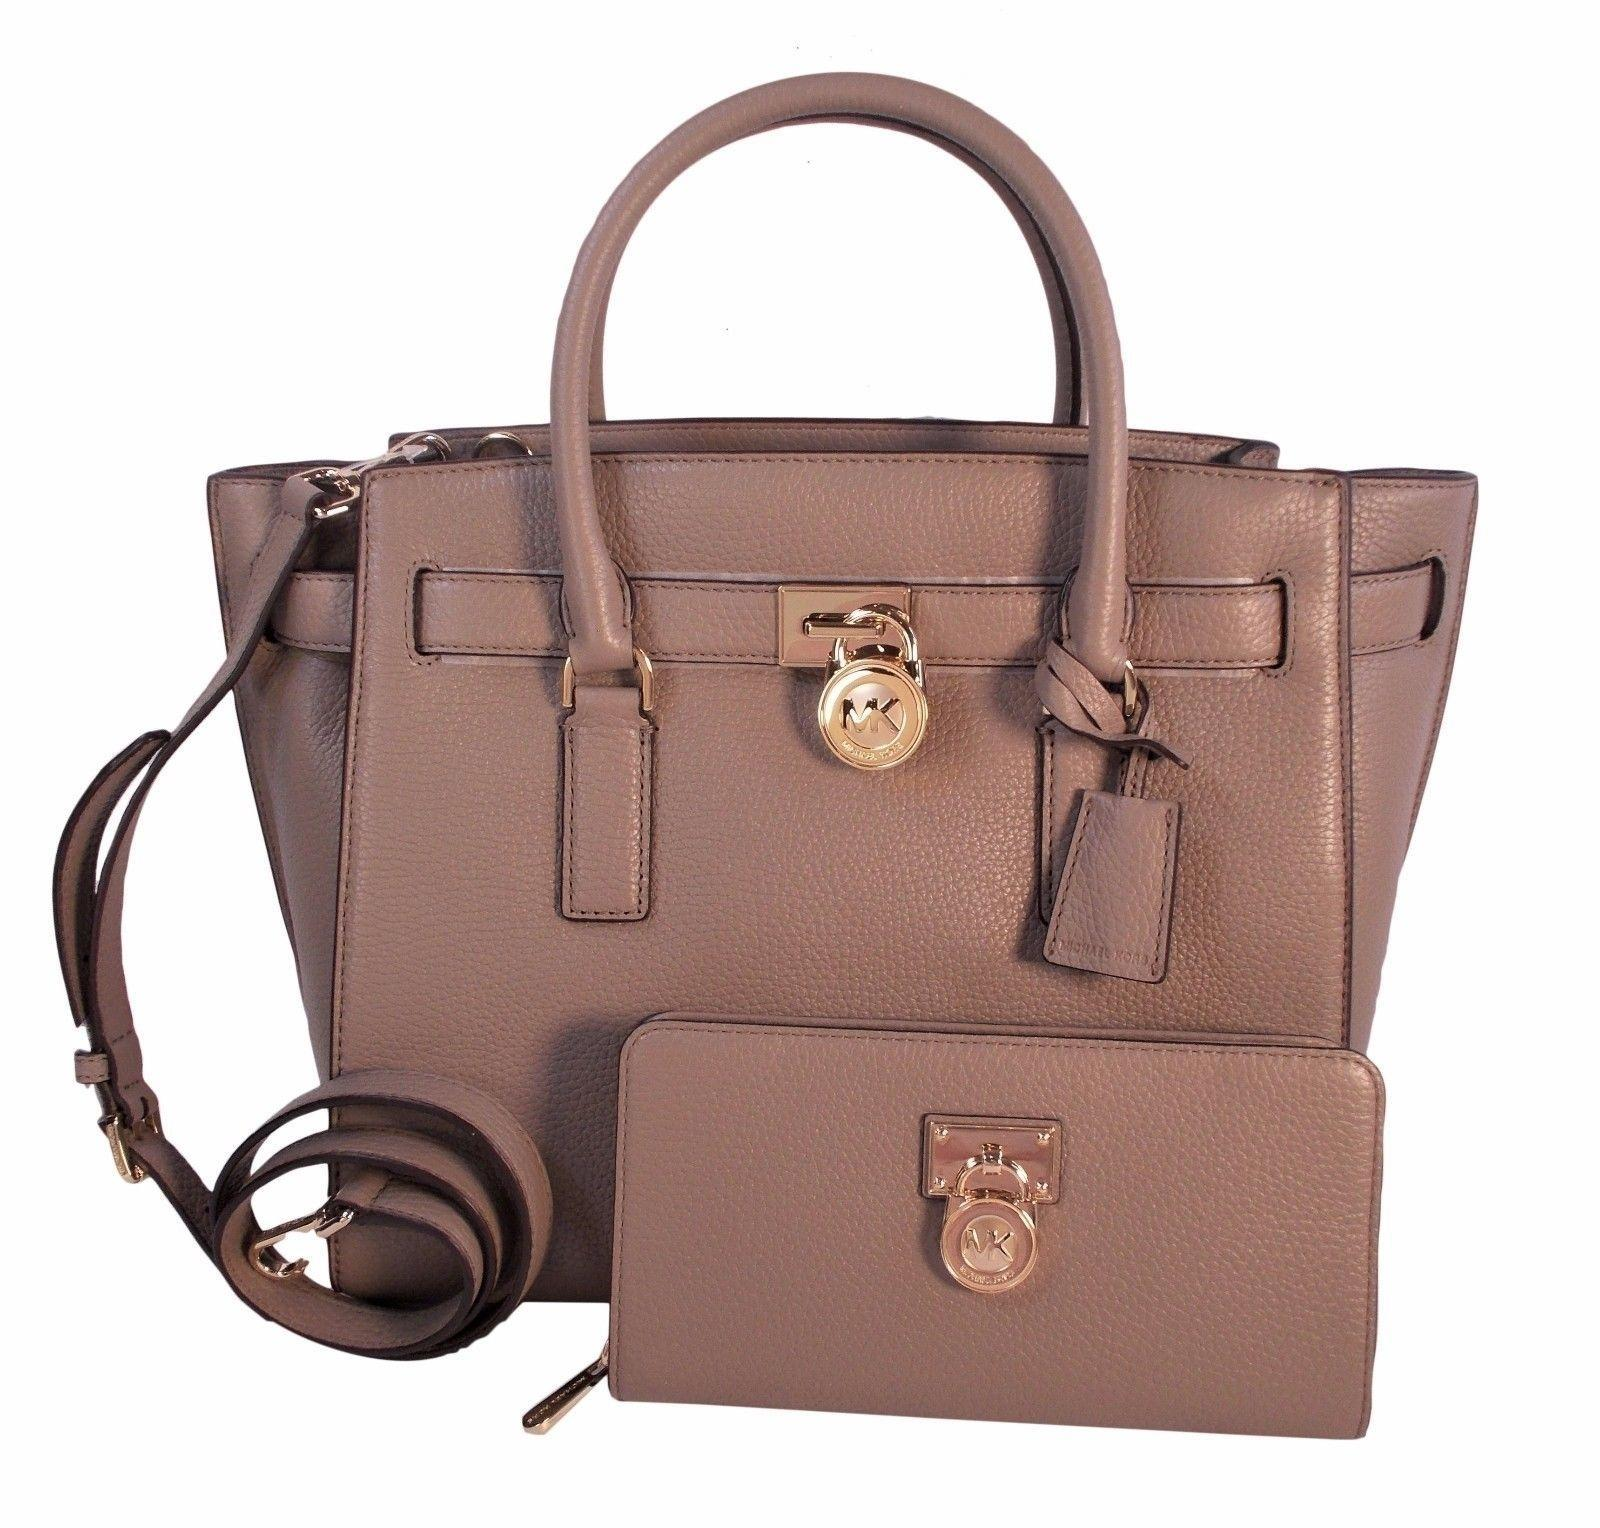 b80e044b1a ... where to buy michael kors hamilton traveler wallet satchel in dark  taupe e048d 1d802